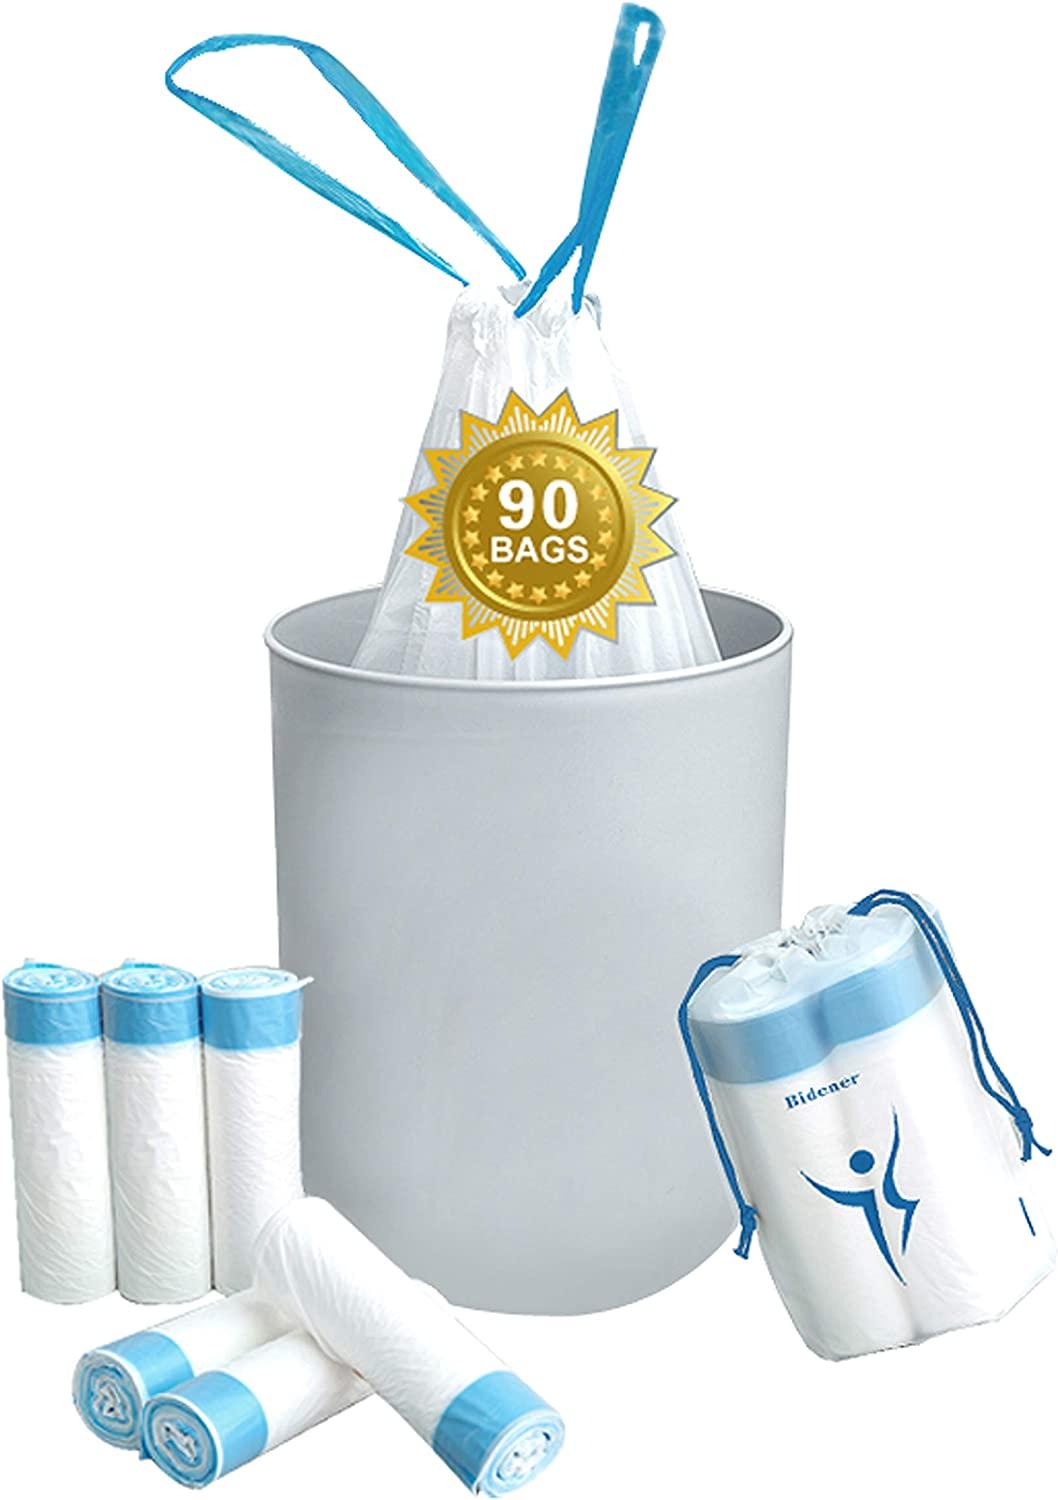 Bidener Small Trash Bags, 90 Count, 4 Gallon, White Color, Drawstring Small Trash Bags for Bathroom, Bedroom, Office, Car, Kitchen, Home, Unscented Clear Small Garbage Bags